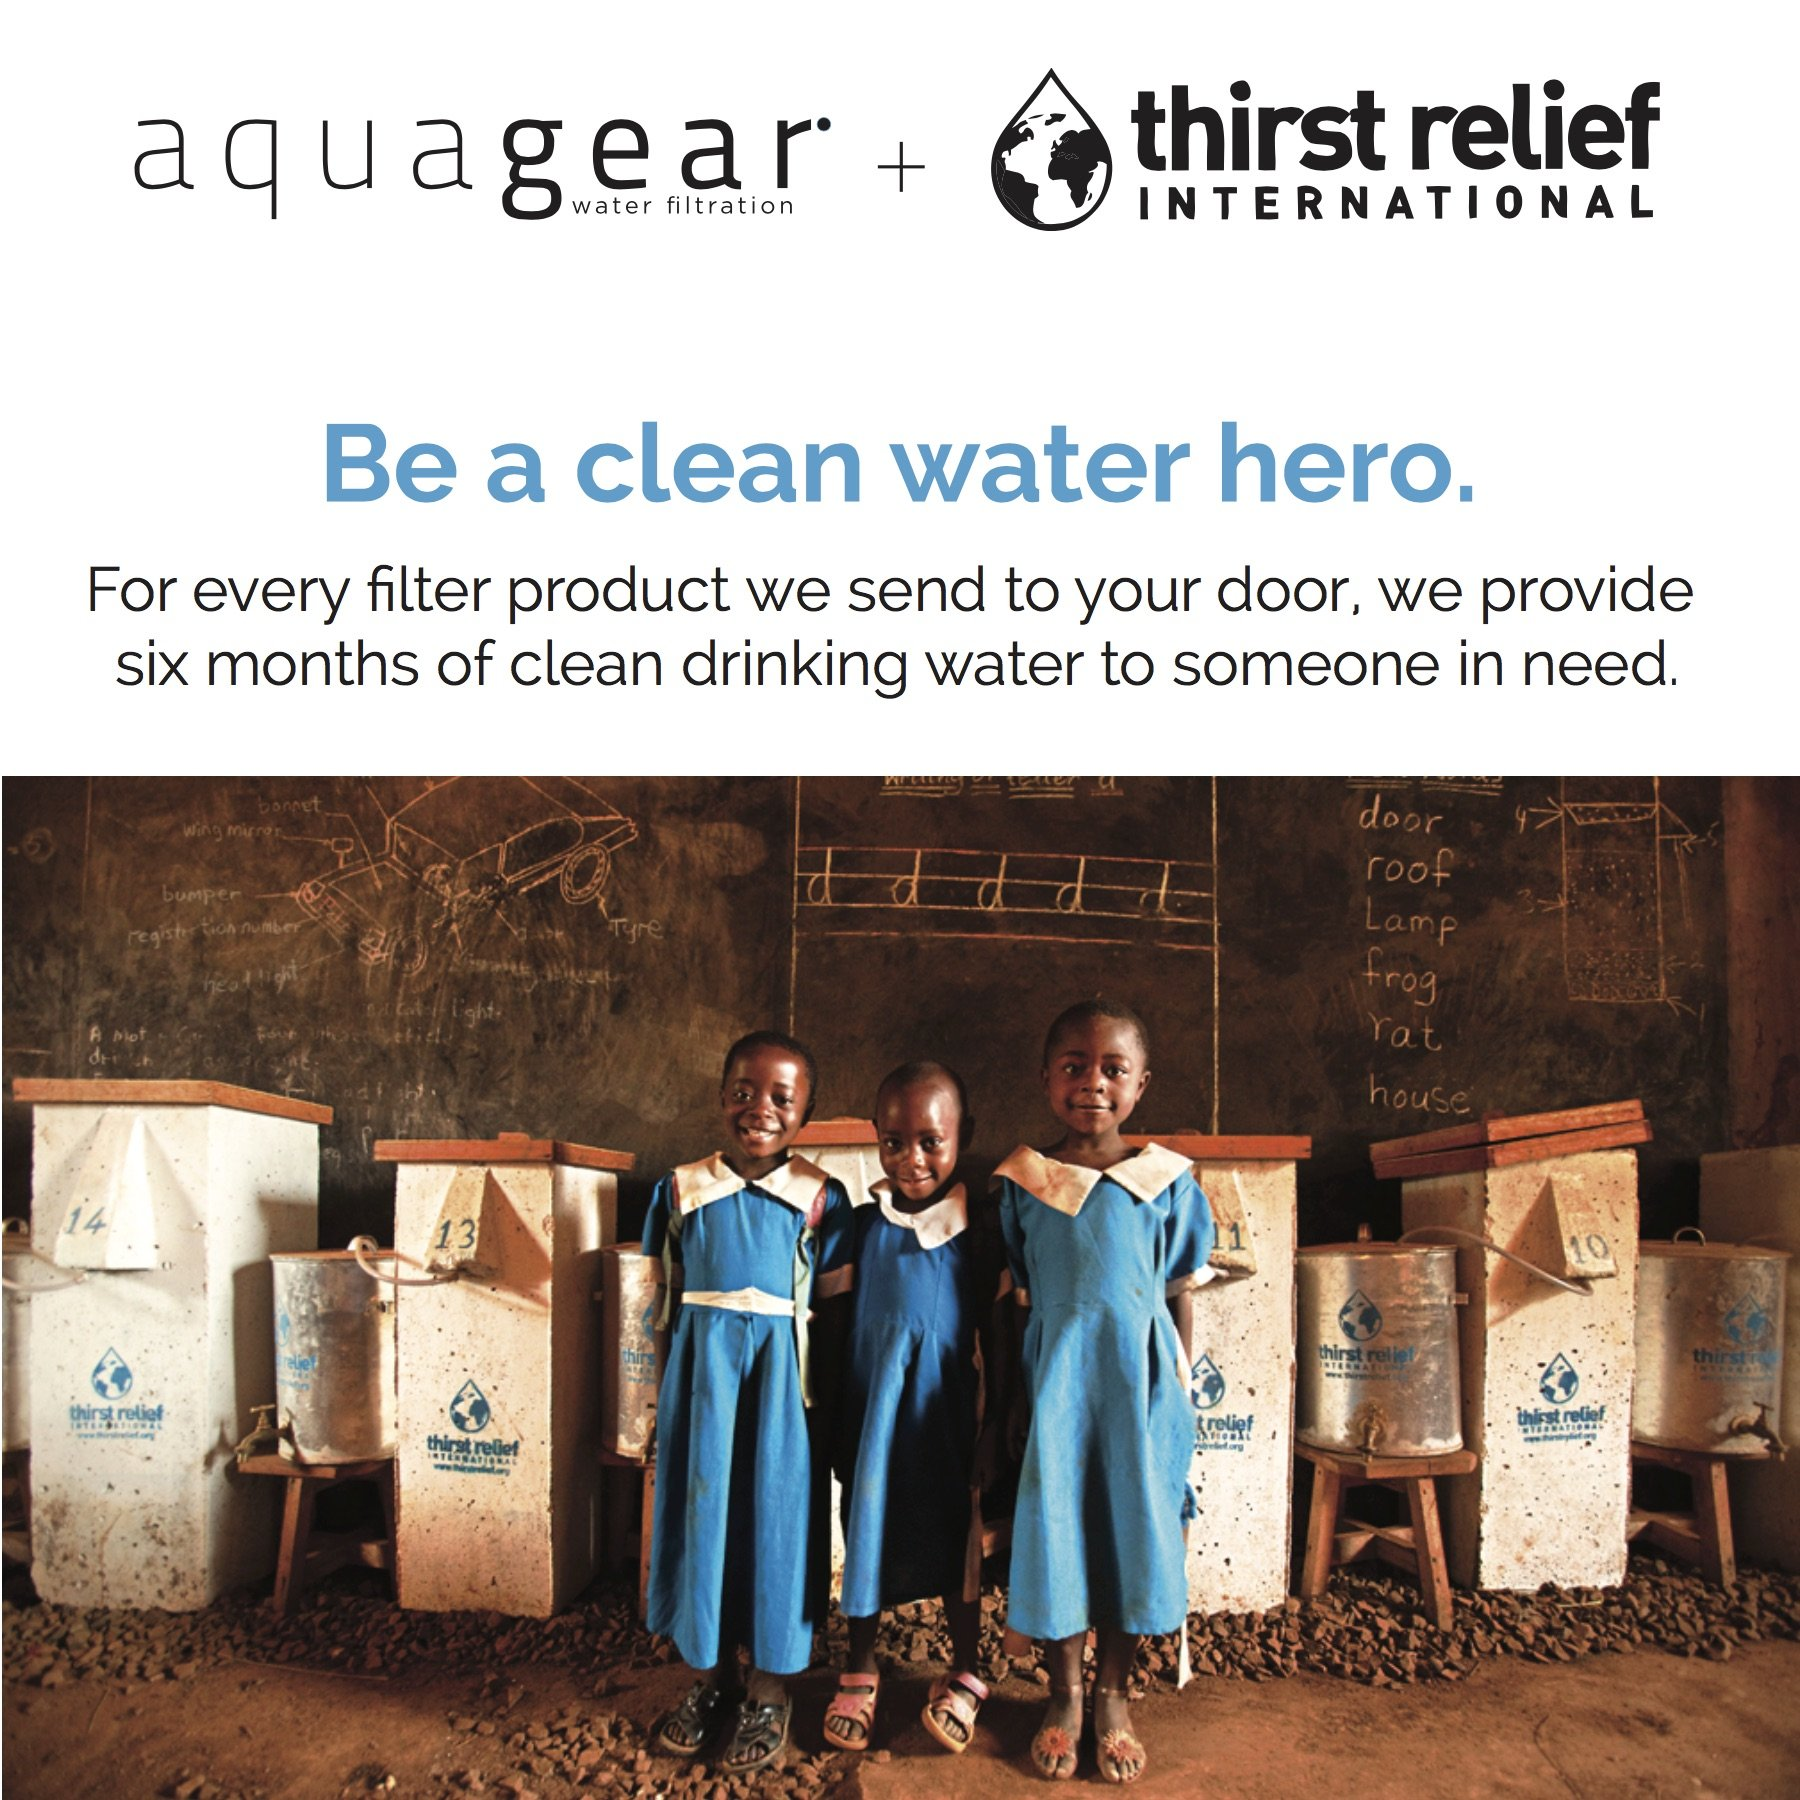 Aquagear Pitcher Replacement Water Filter – Removes Fluoride & Lead – 150 Gallon Capacity Filter by Aquagear (Image #3)